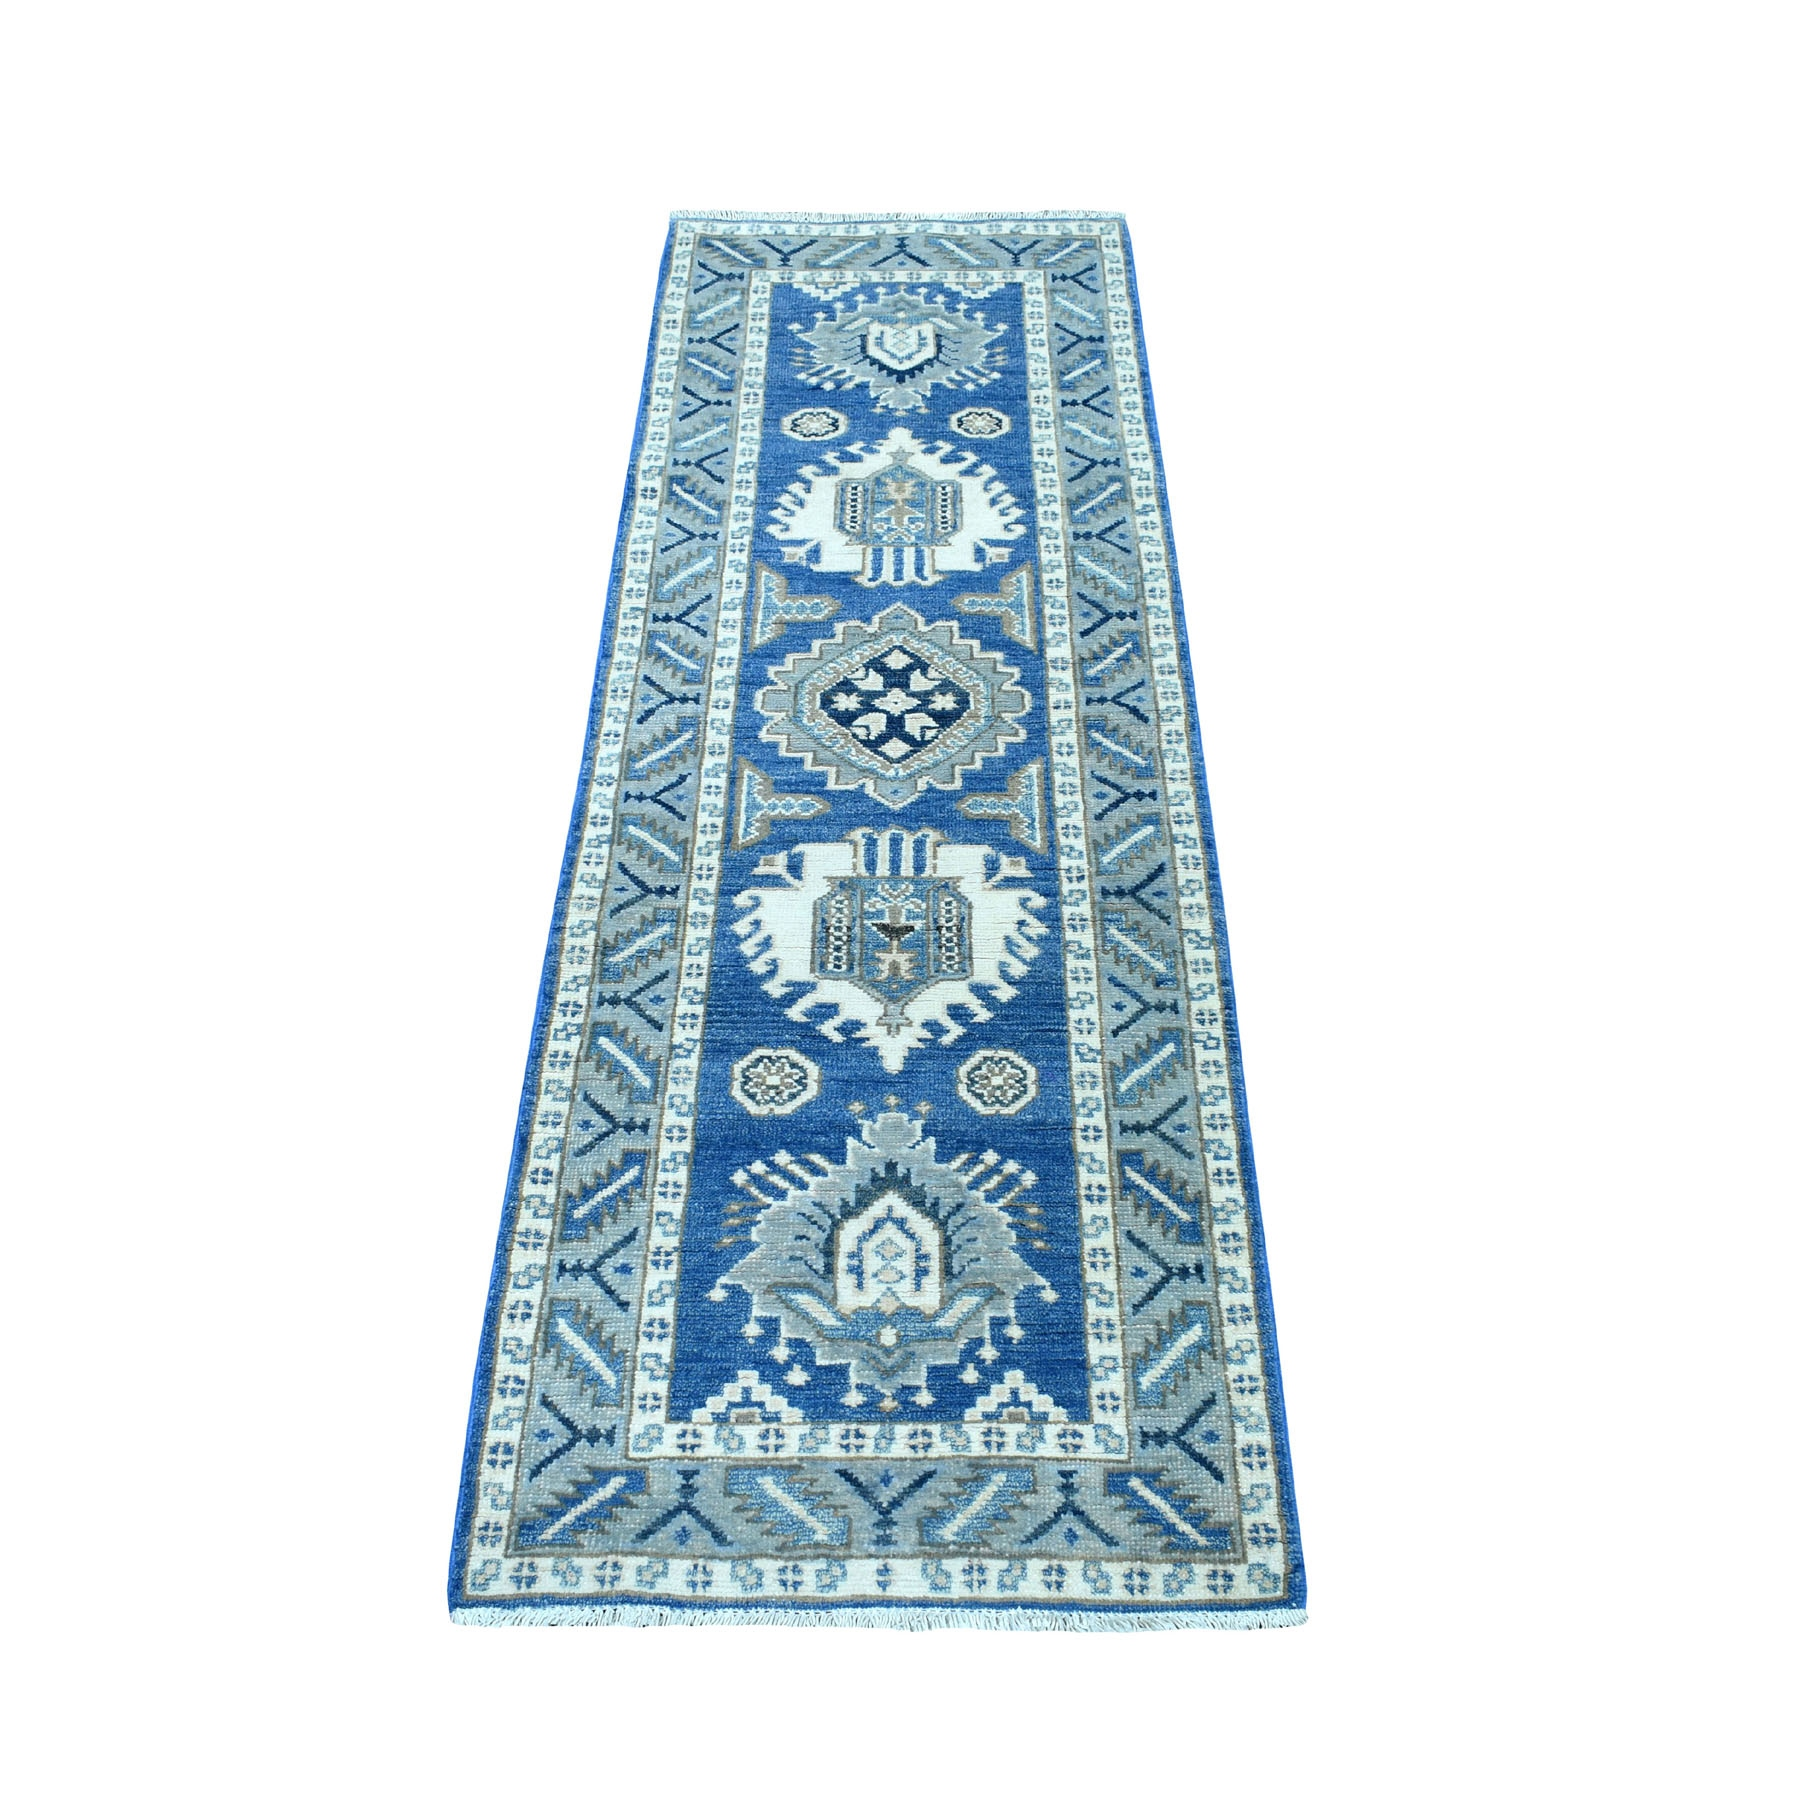 "2'x5'9"" Blue Hand Knotted Vintage Look Kazak Pure Wool Tribal Design Runner Oriental Rug"